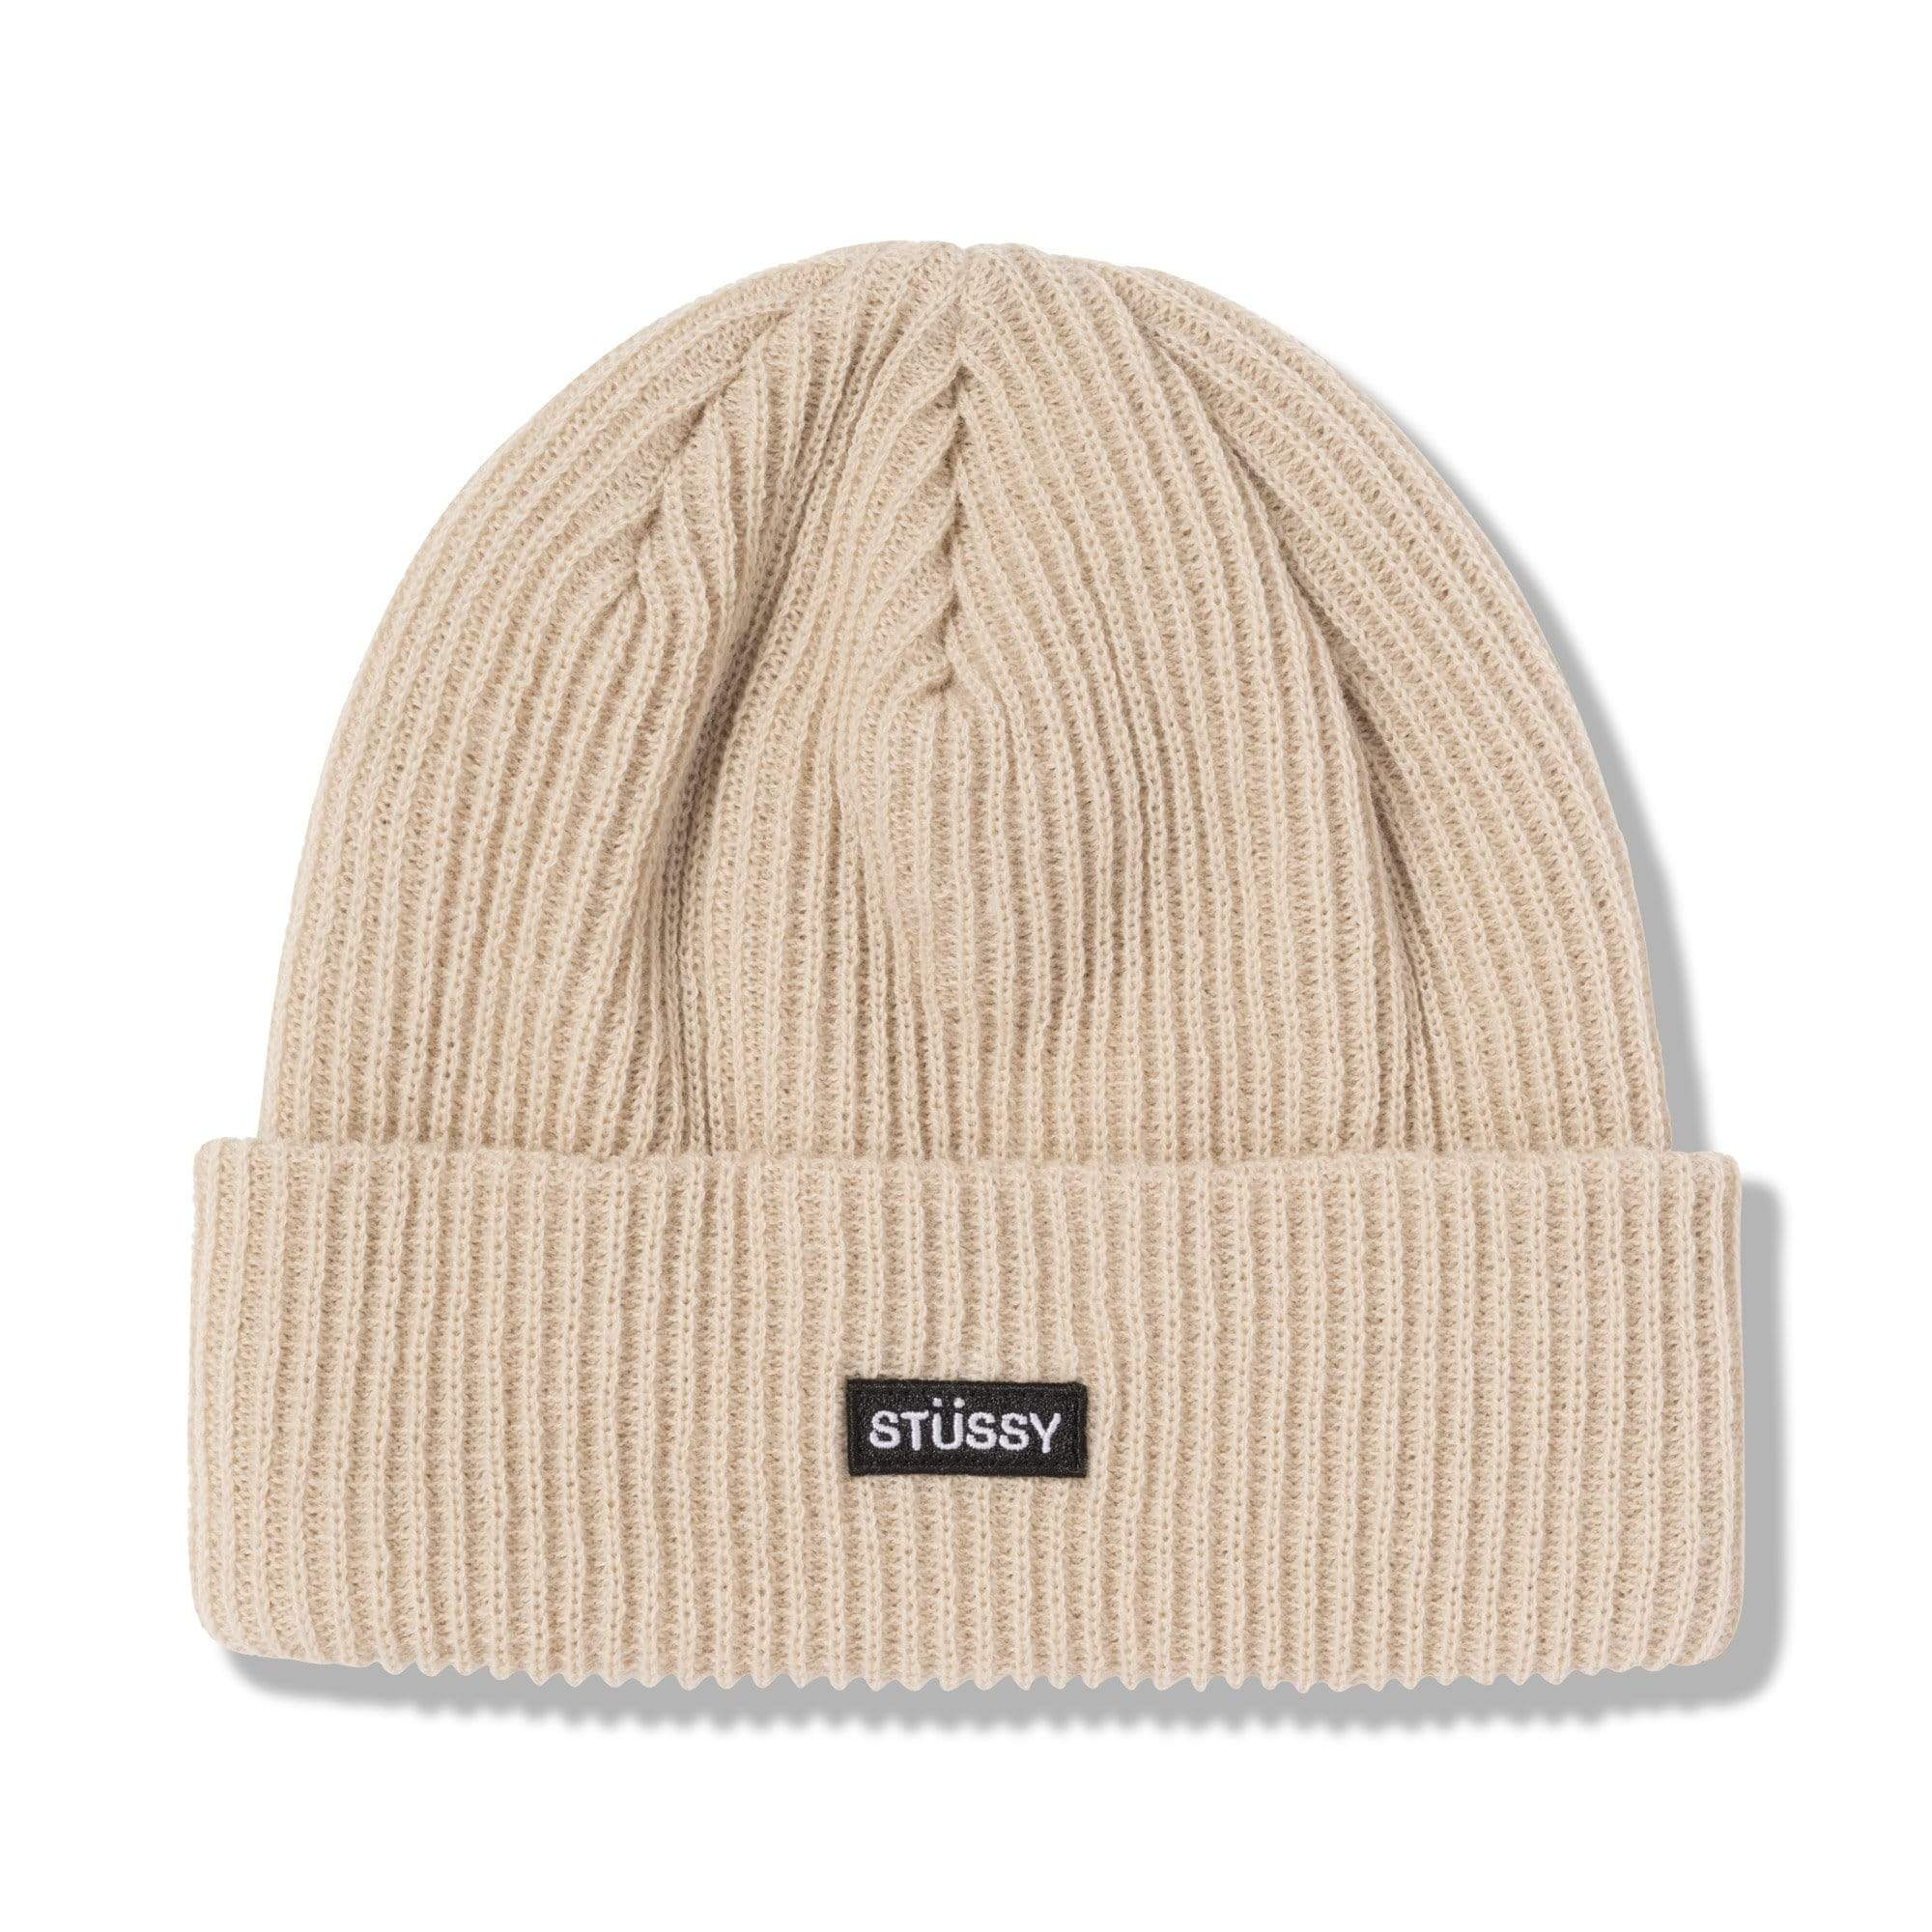 Stüssy Kopfbedeckungen Sand Small Patch Watchcap Beanie Holiday20